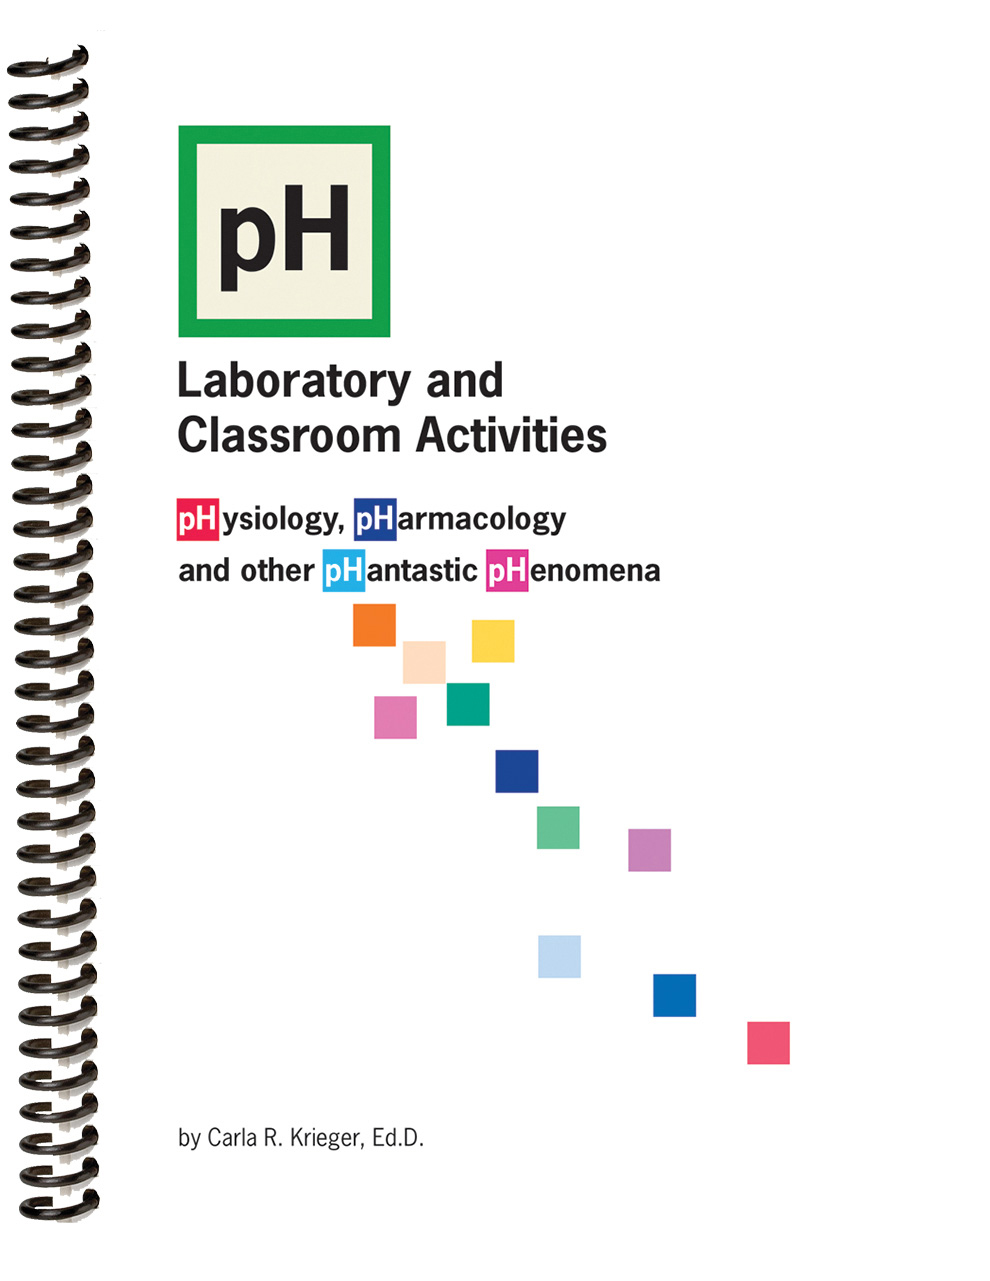 ph lab In this free virtual lab simulation for kids, players learn how to calibrate a ph meter and use it to measure the acidity of standard solutions.